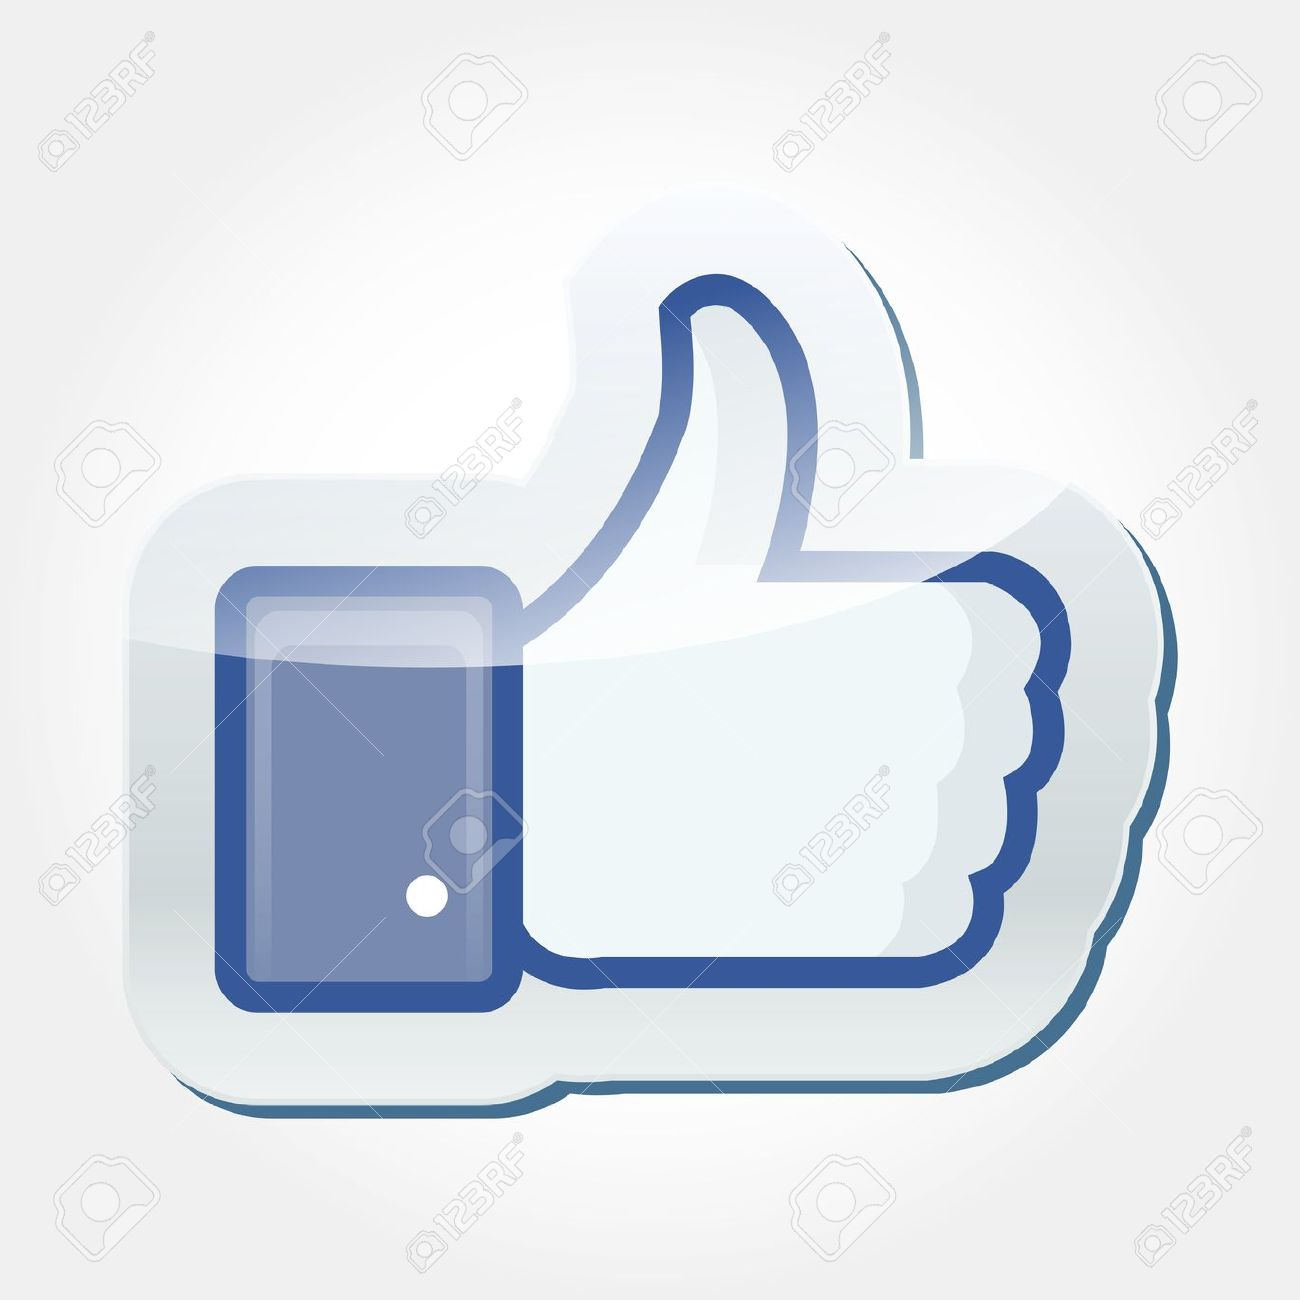 Facebook like button clipart banner download Facebook Like Button Stock Photo, Picture And Royalty Free Image ... banner download